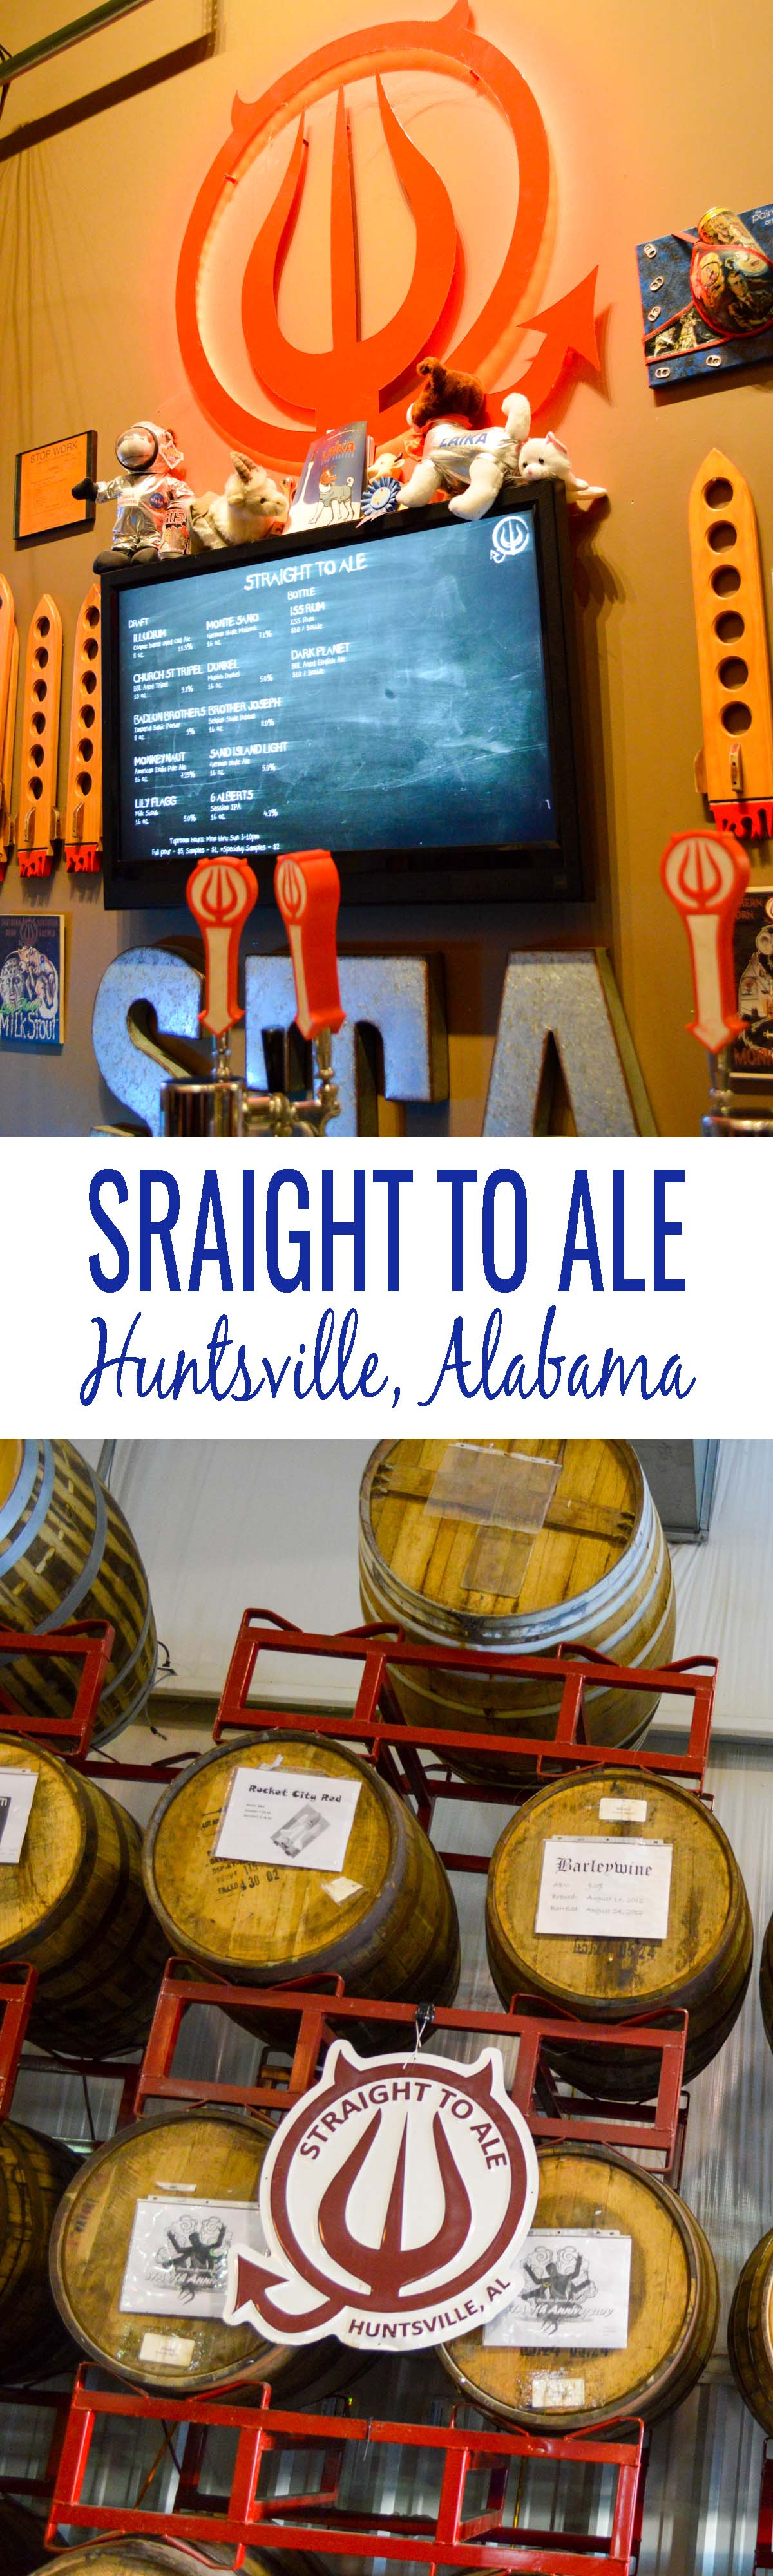 Taproom Talk: Straight to Ale in Huntsville, Alabama. Explore Huntsville's food and craft beer travel scene through the eyes Operations Manager, Matthew Broadhurst. Huntsville is one tasty (and sudsy) town!